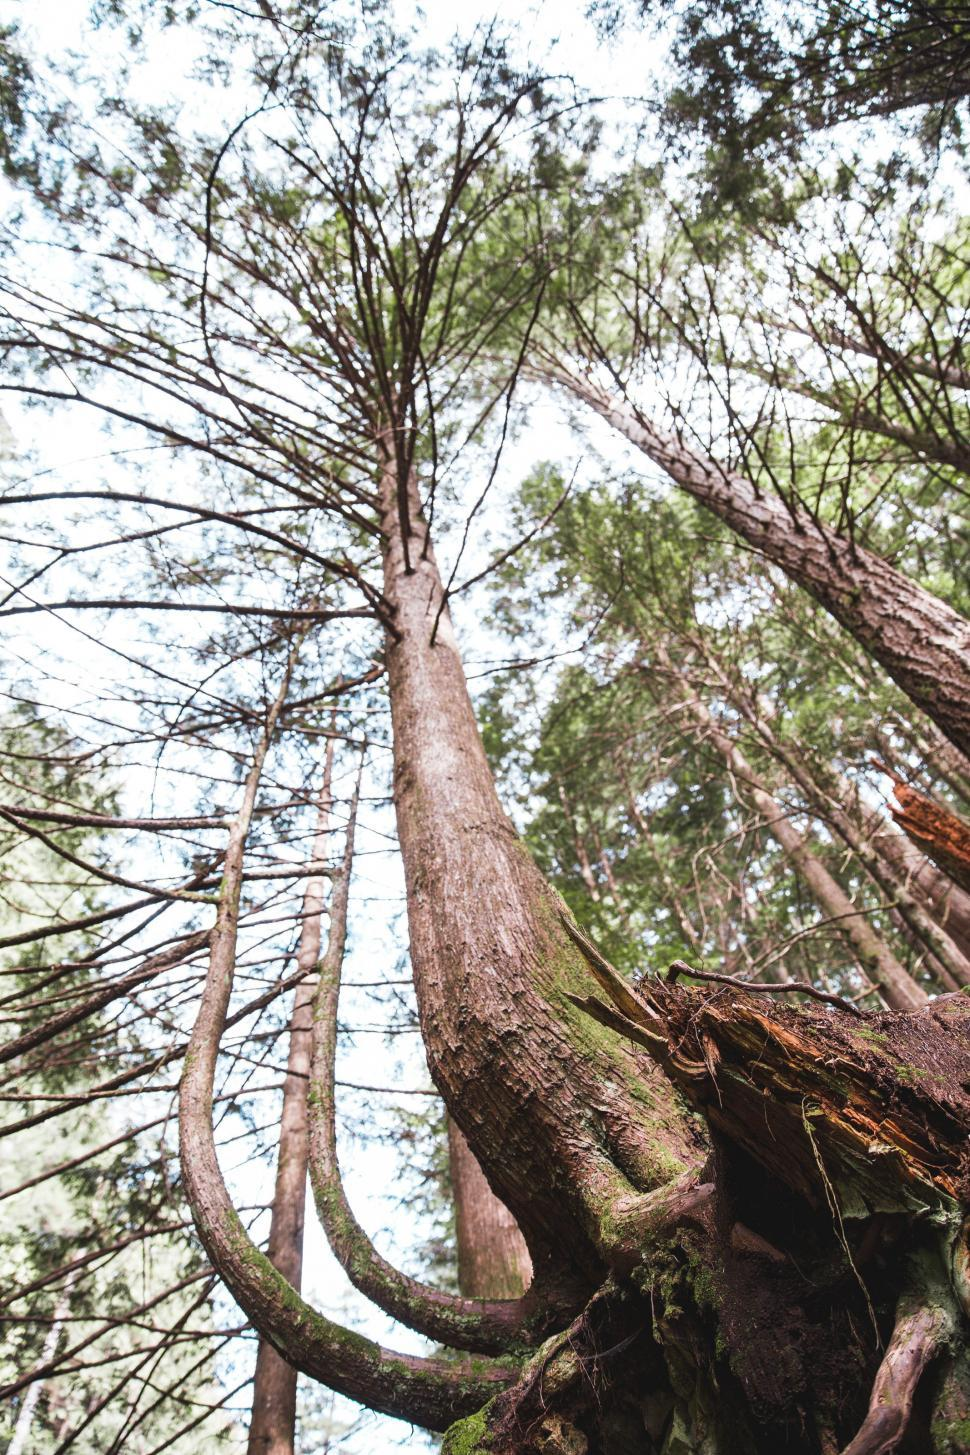 Download Free Stock HD Photo of A tall tree with big roots Online